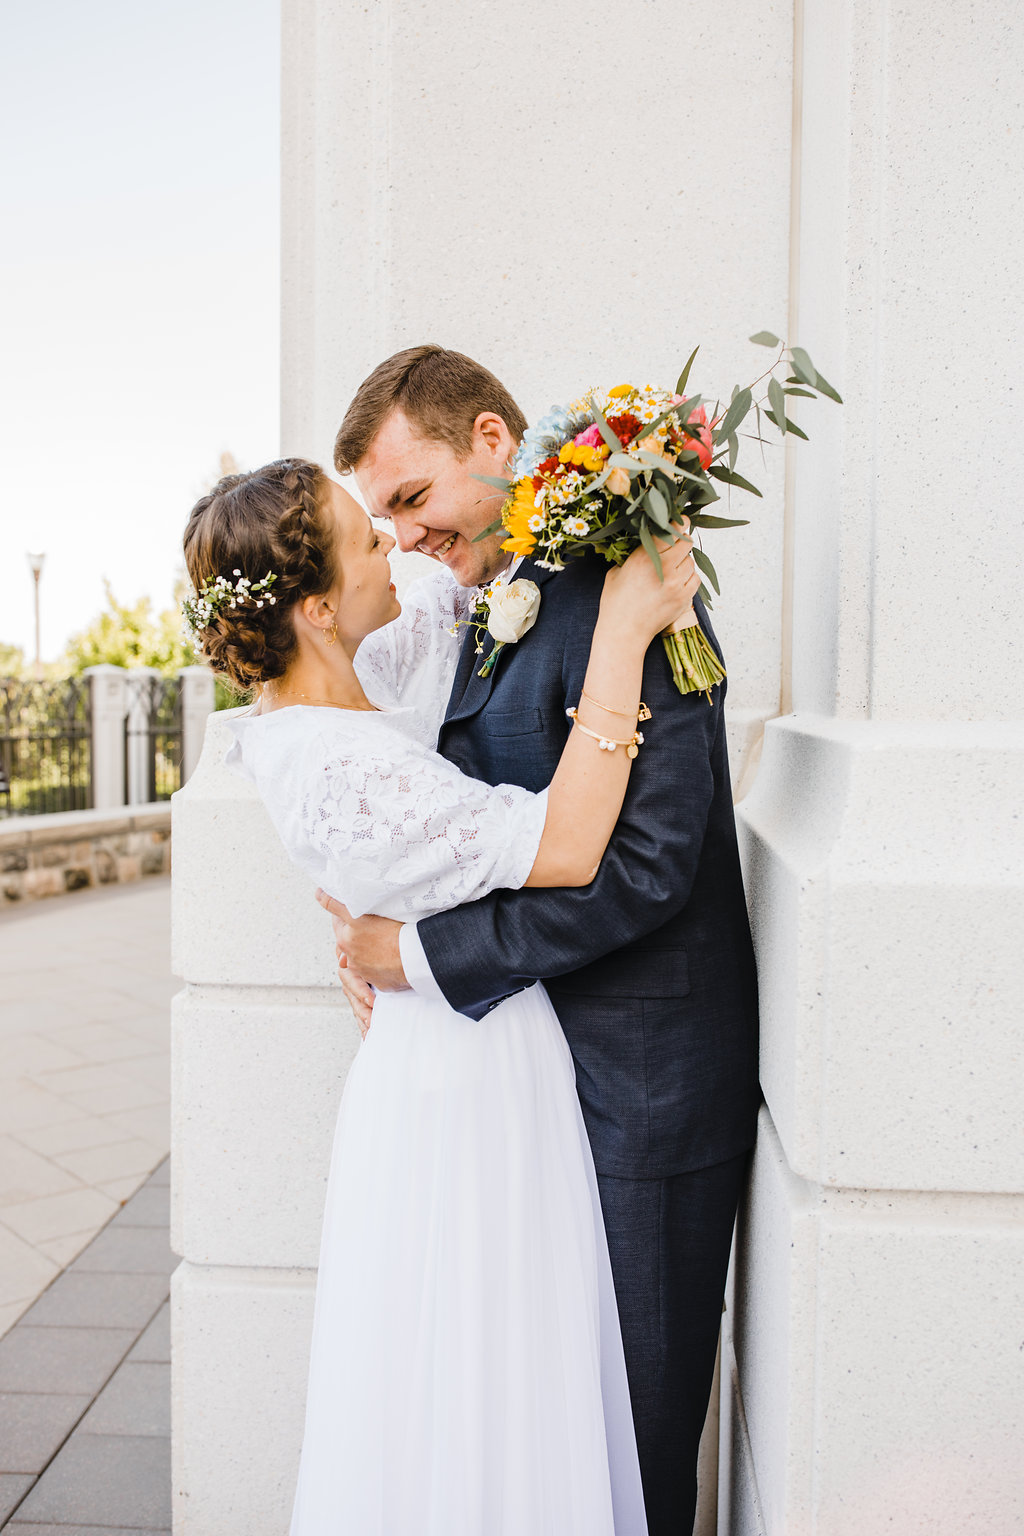 brigham city ut wedding photographer best professional lds wedding day photos at the temple